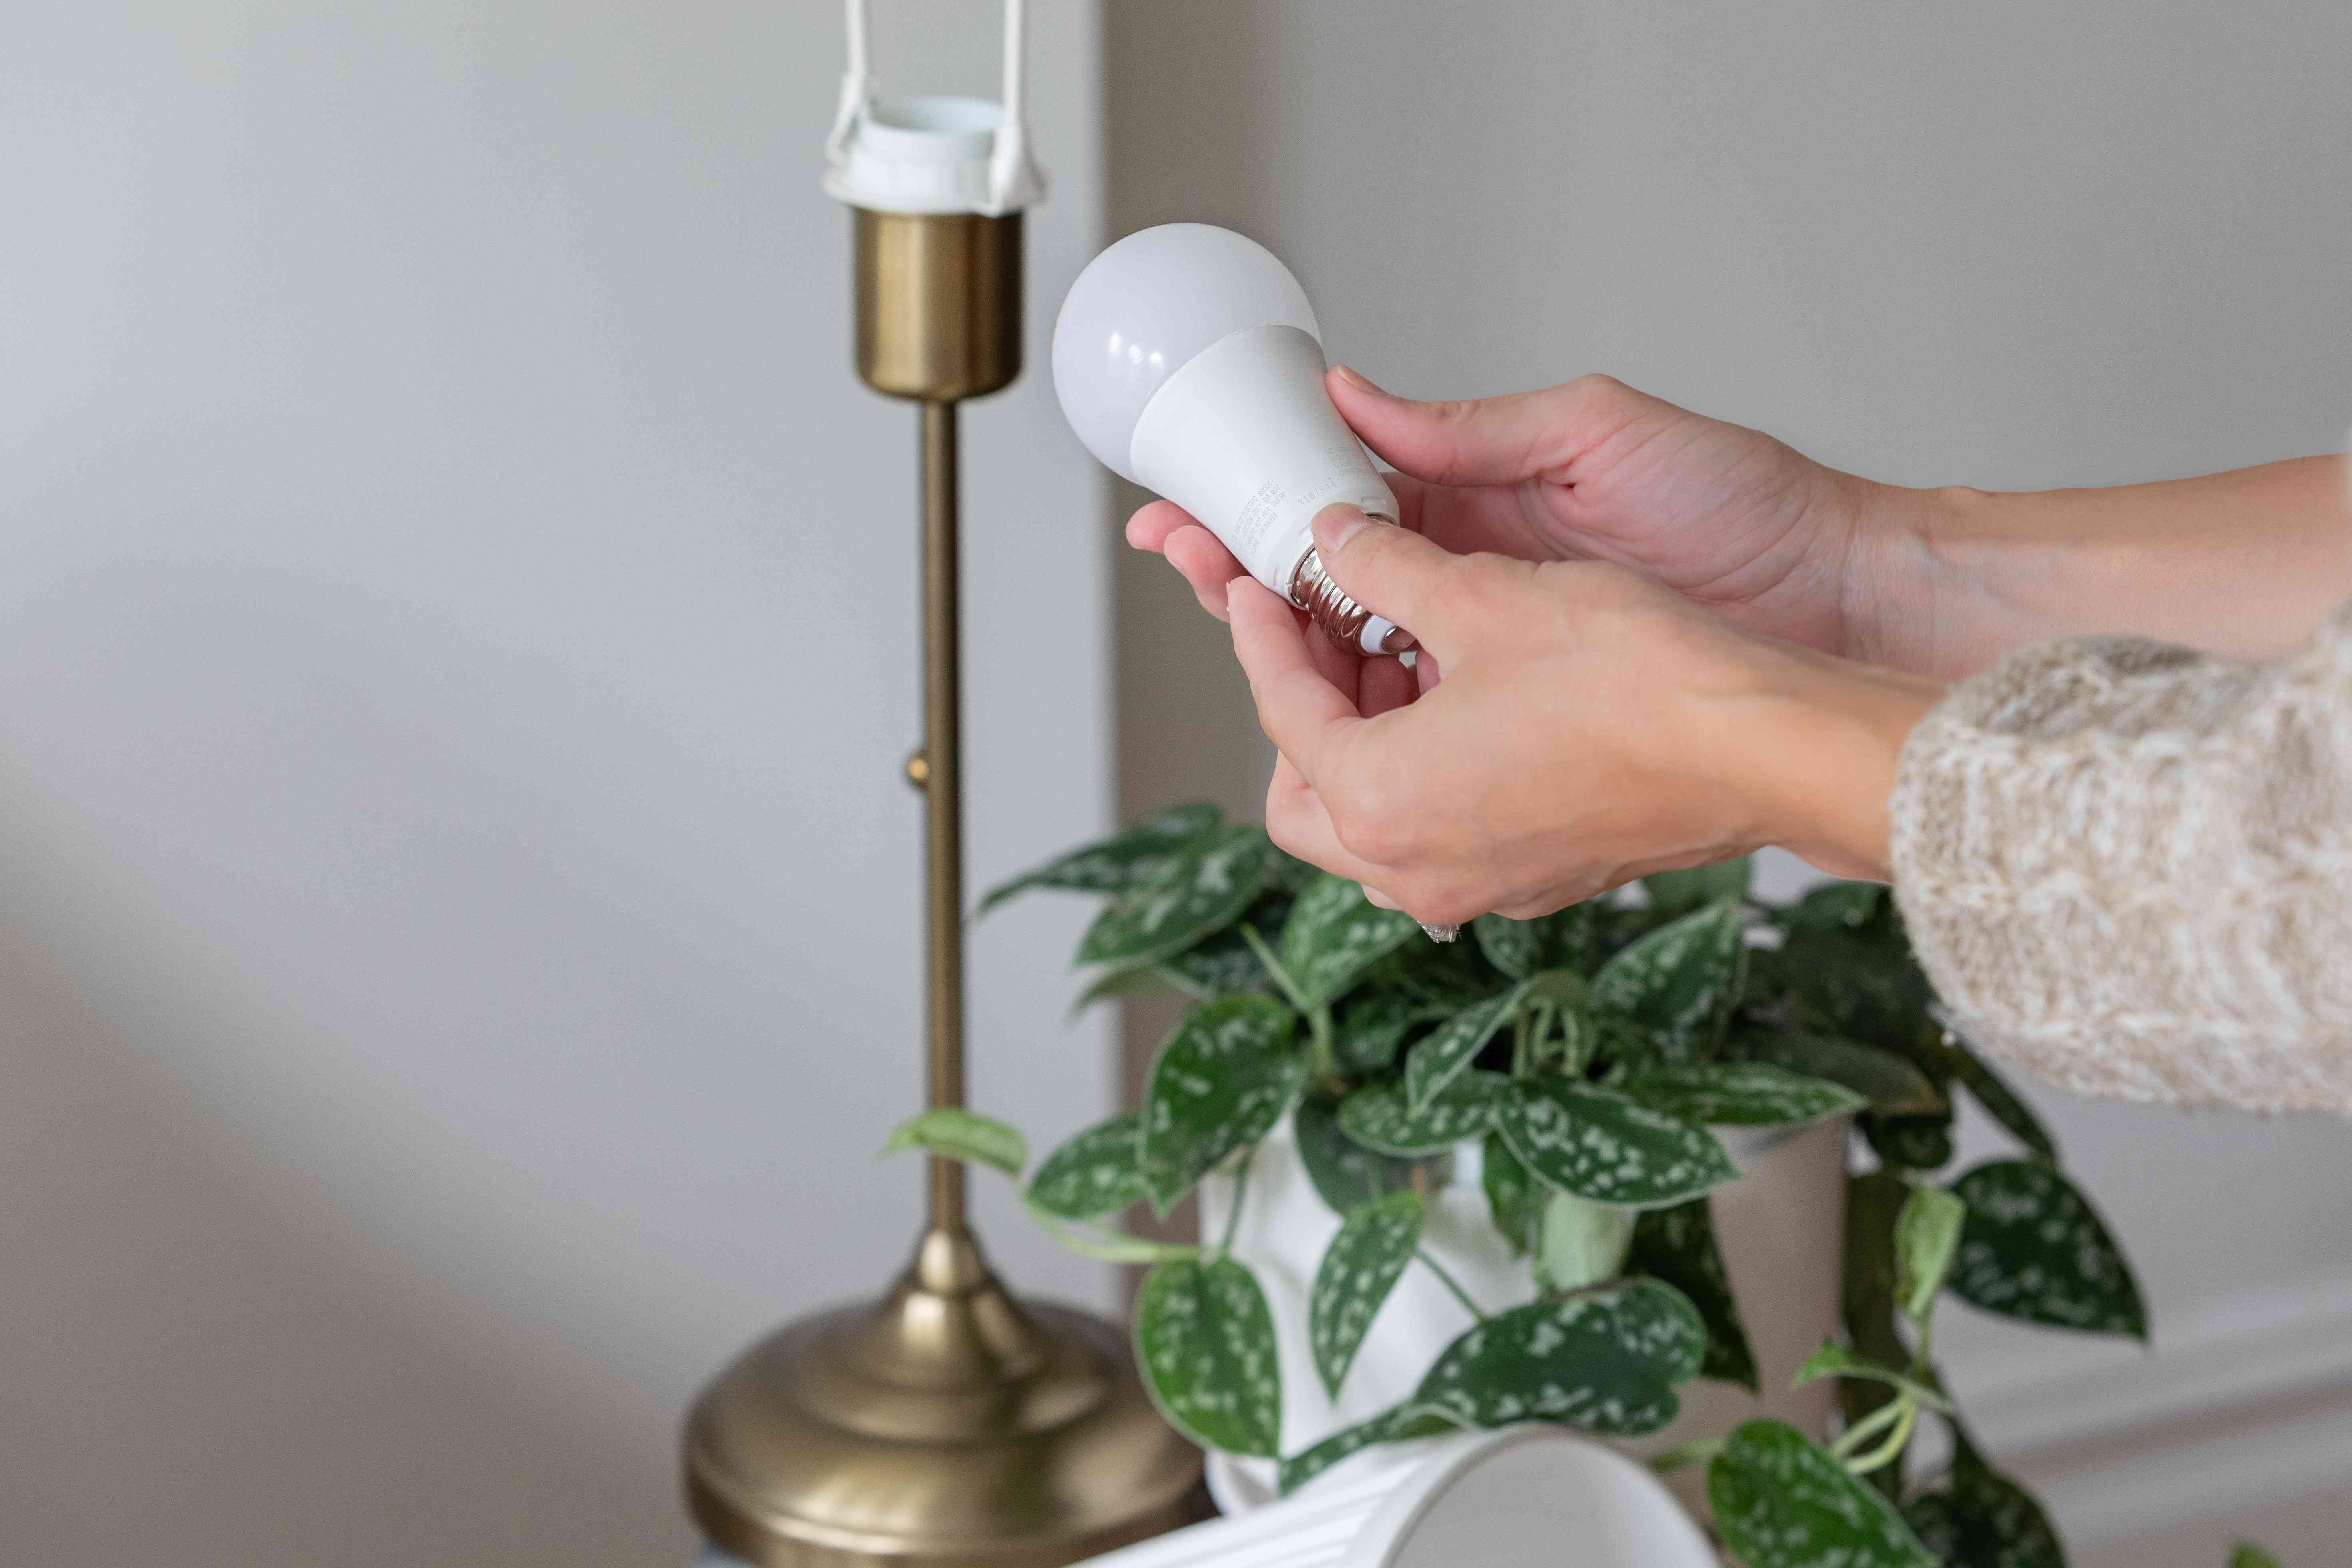 Inspecting a table lamp